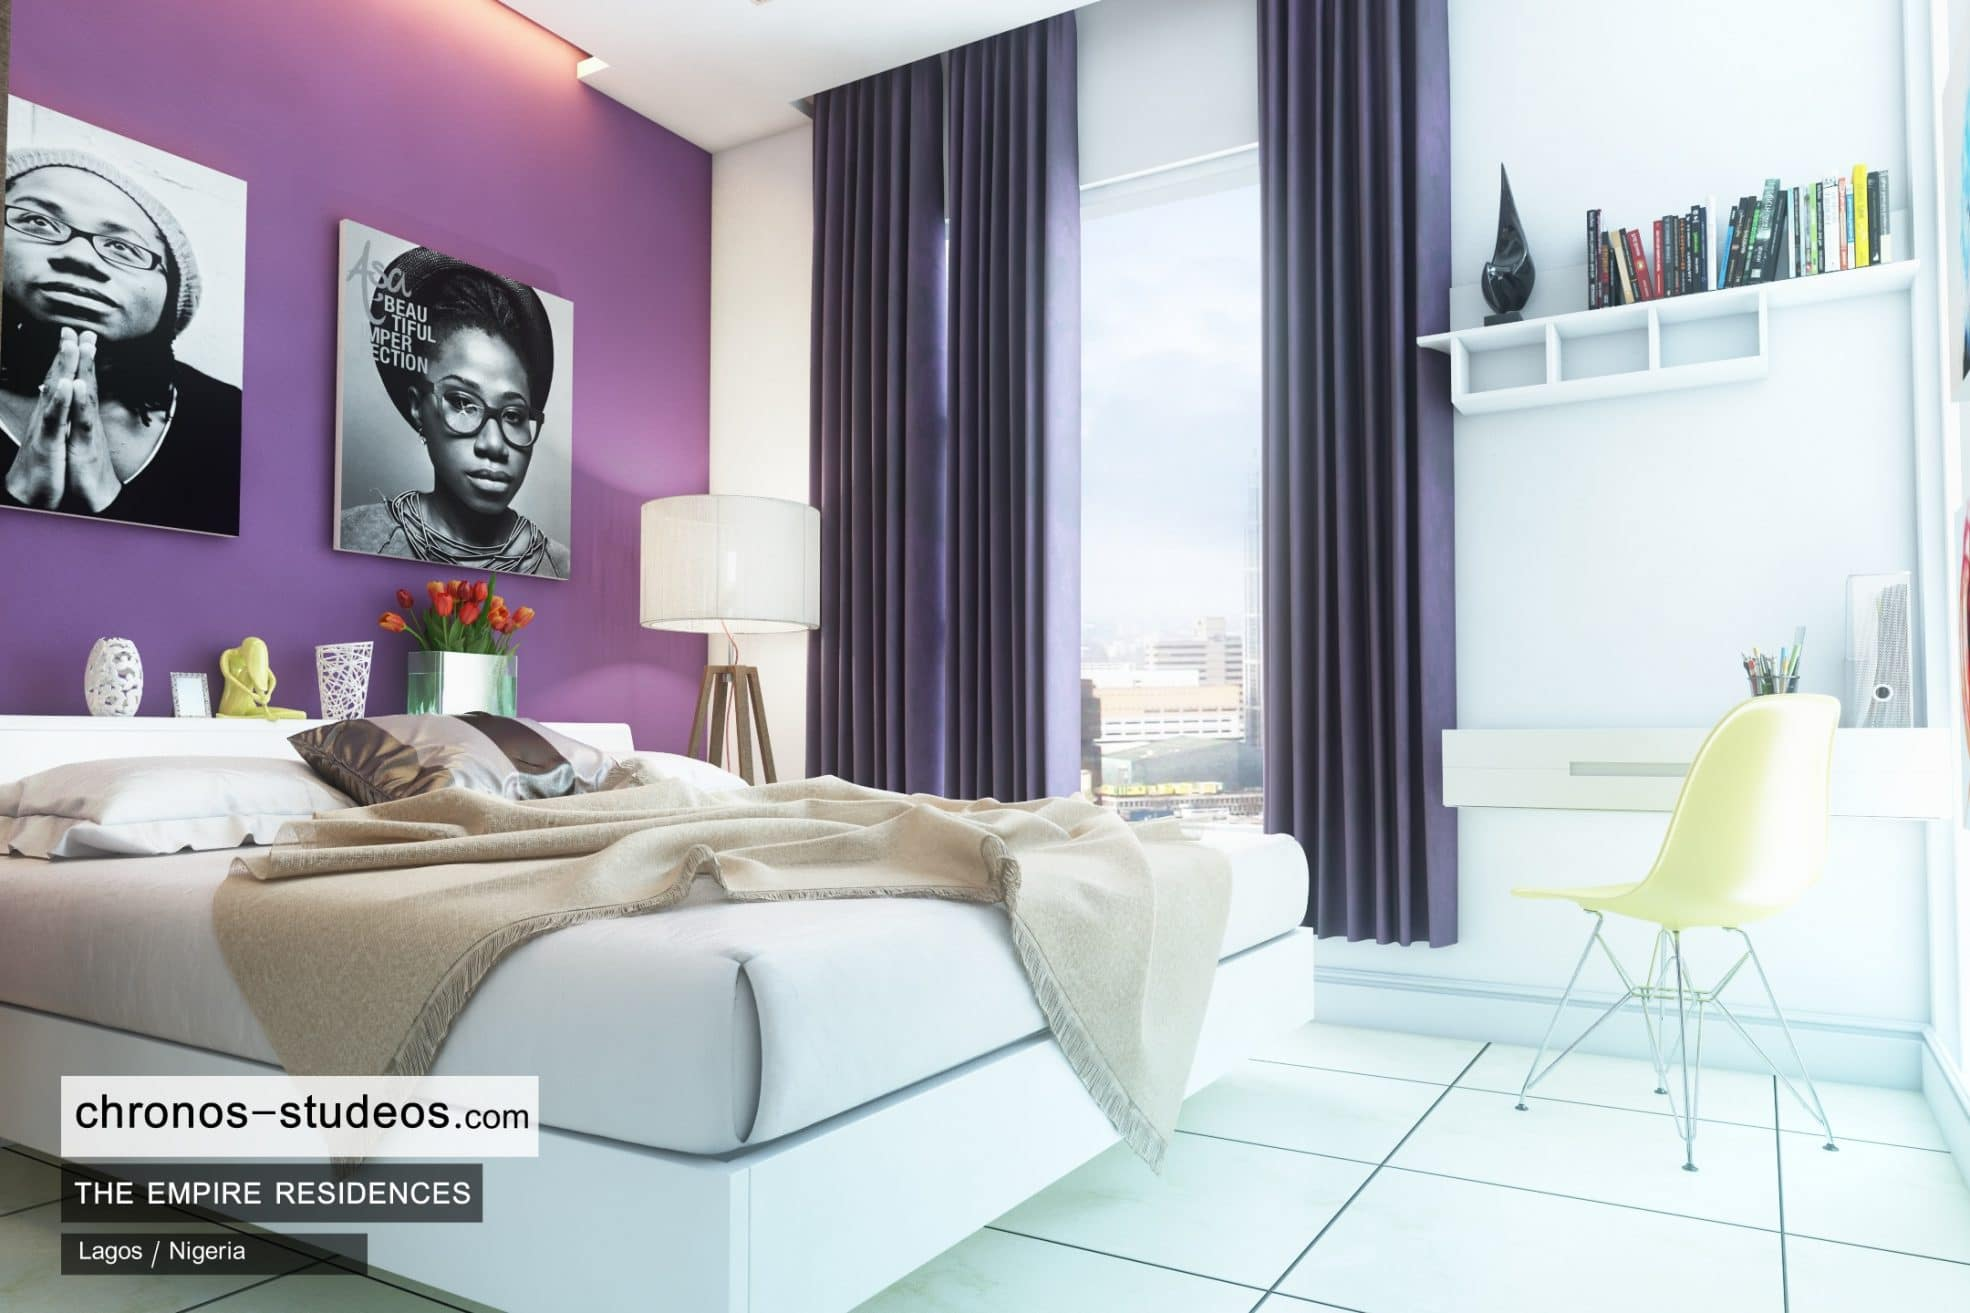 4 ways you can improve your bedroom designs single ladies for Ways to design your bedroom